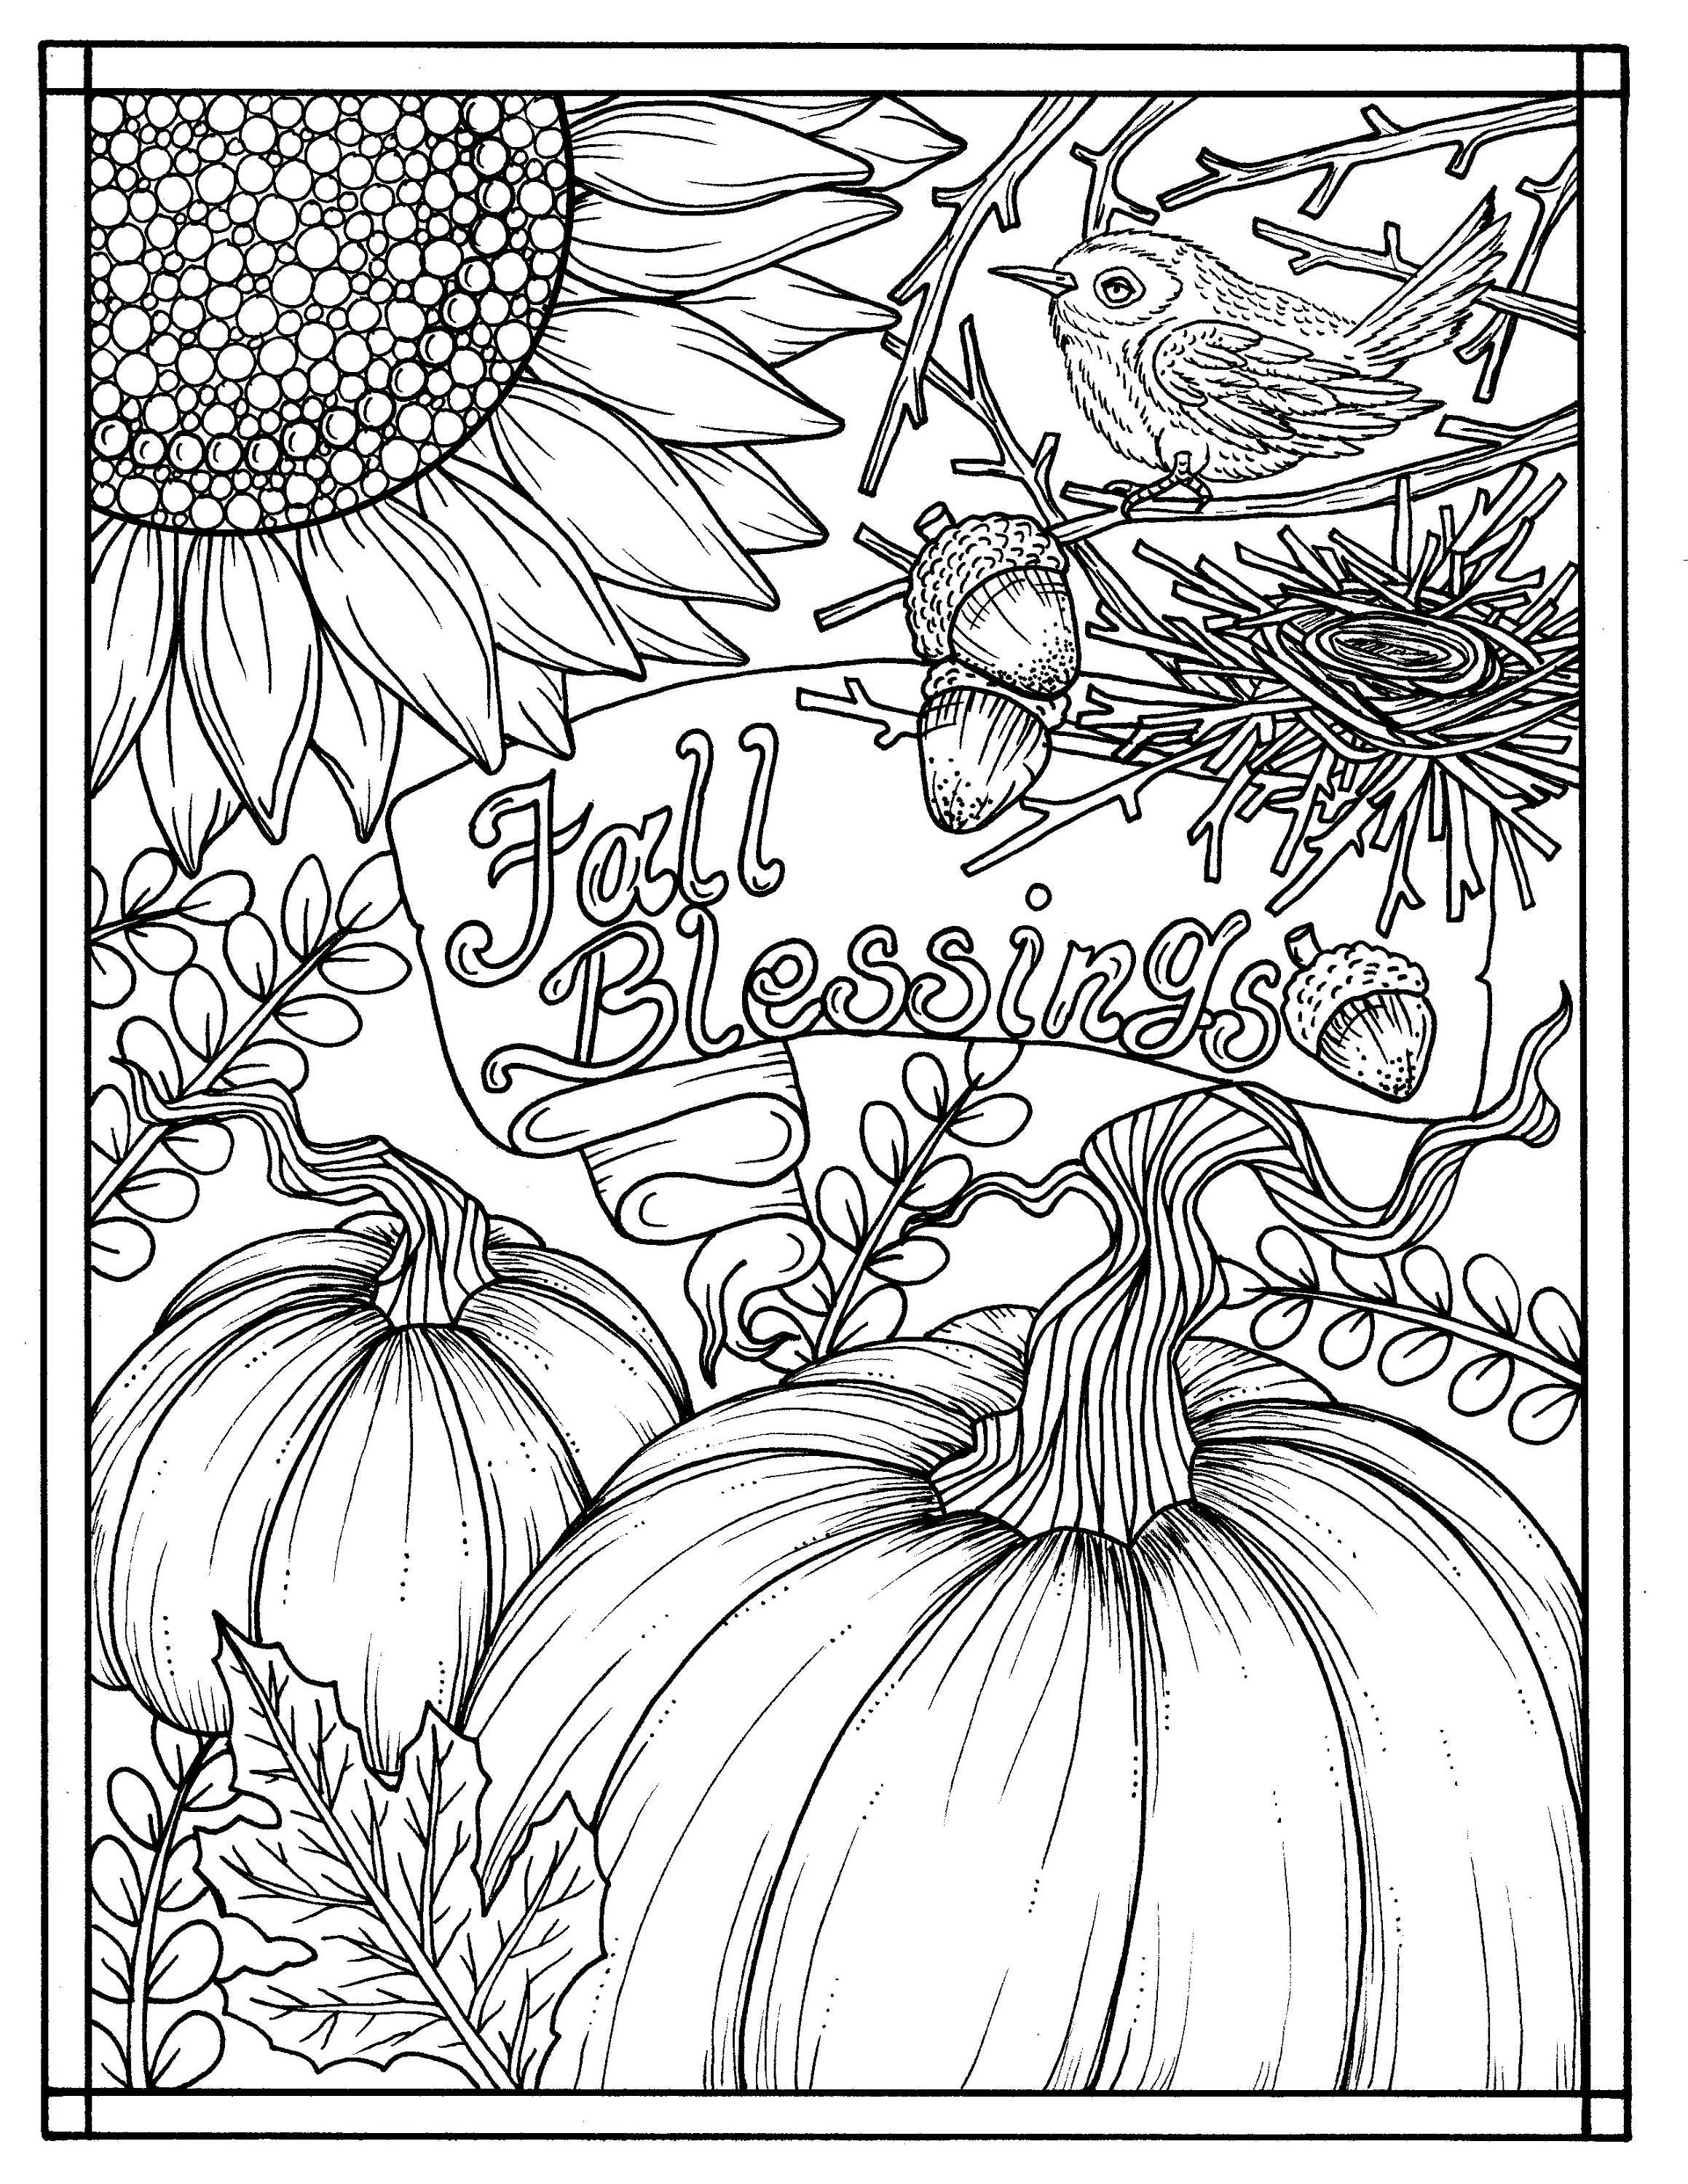 fall coloring pages fall coloring pages to download and print for free fall coloring pages